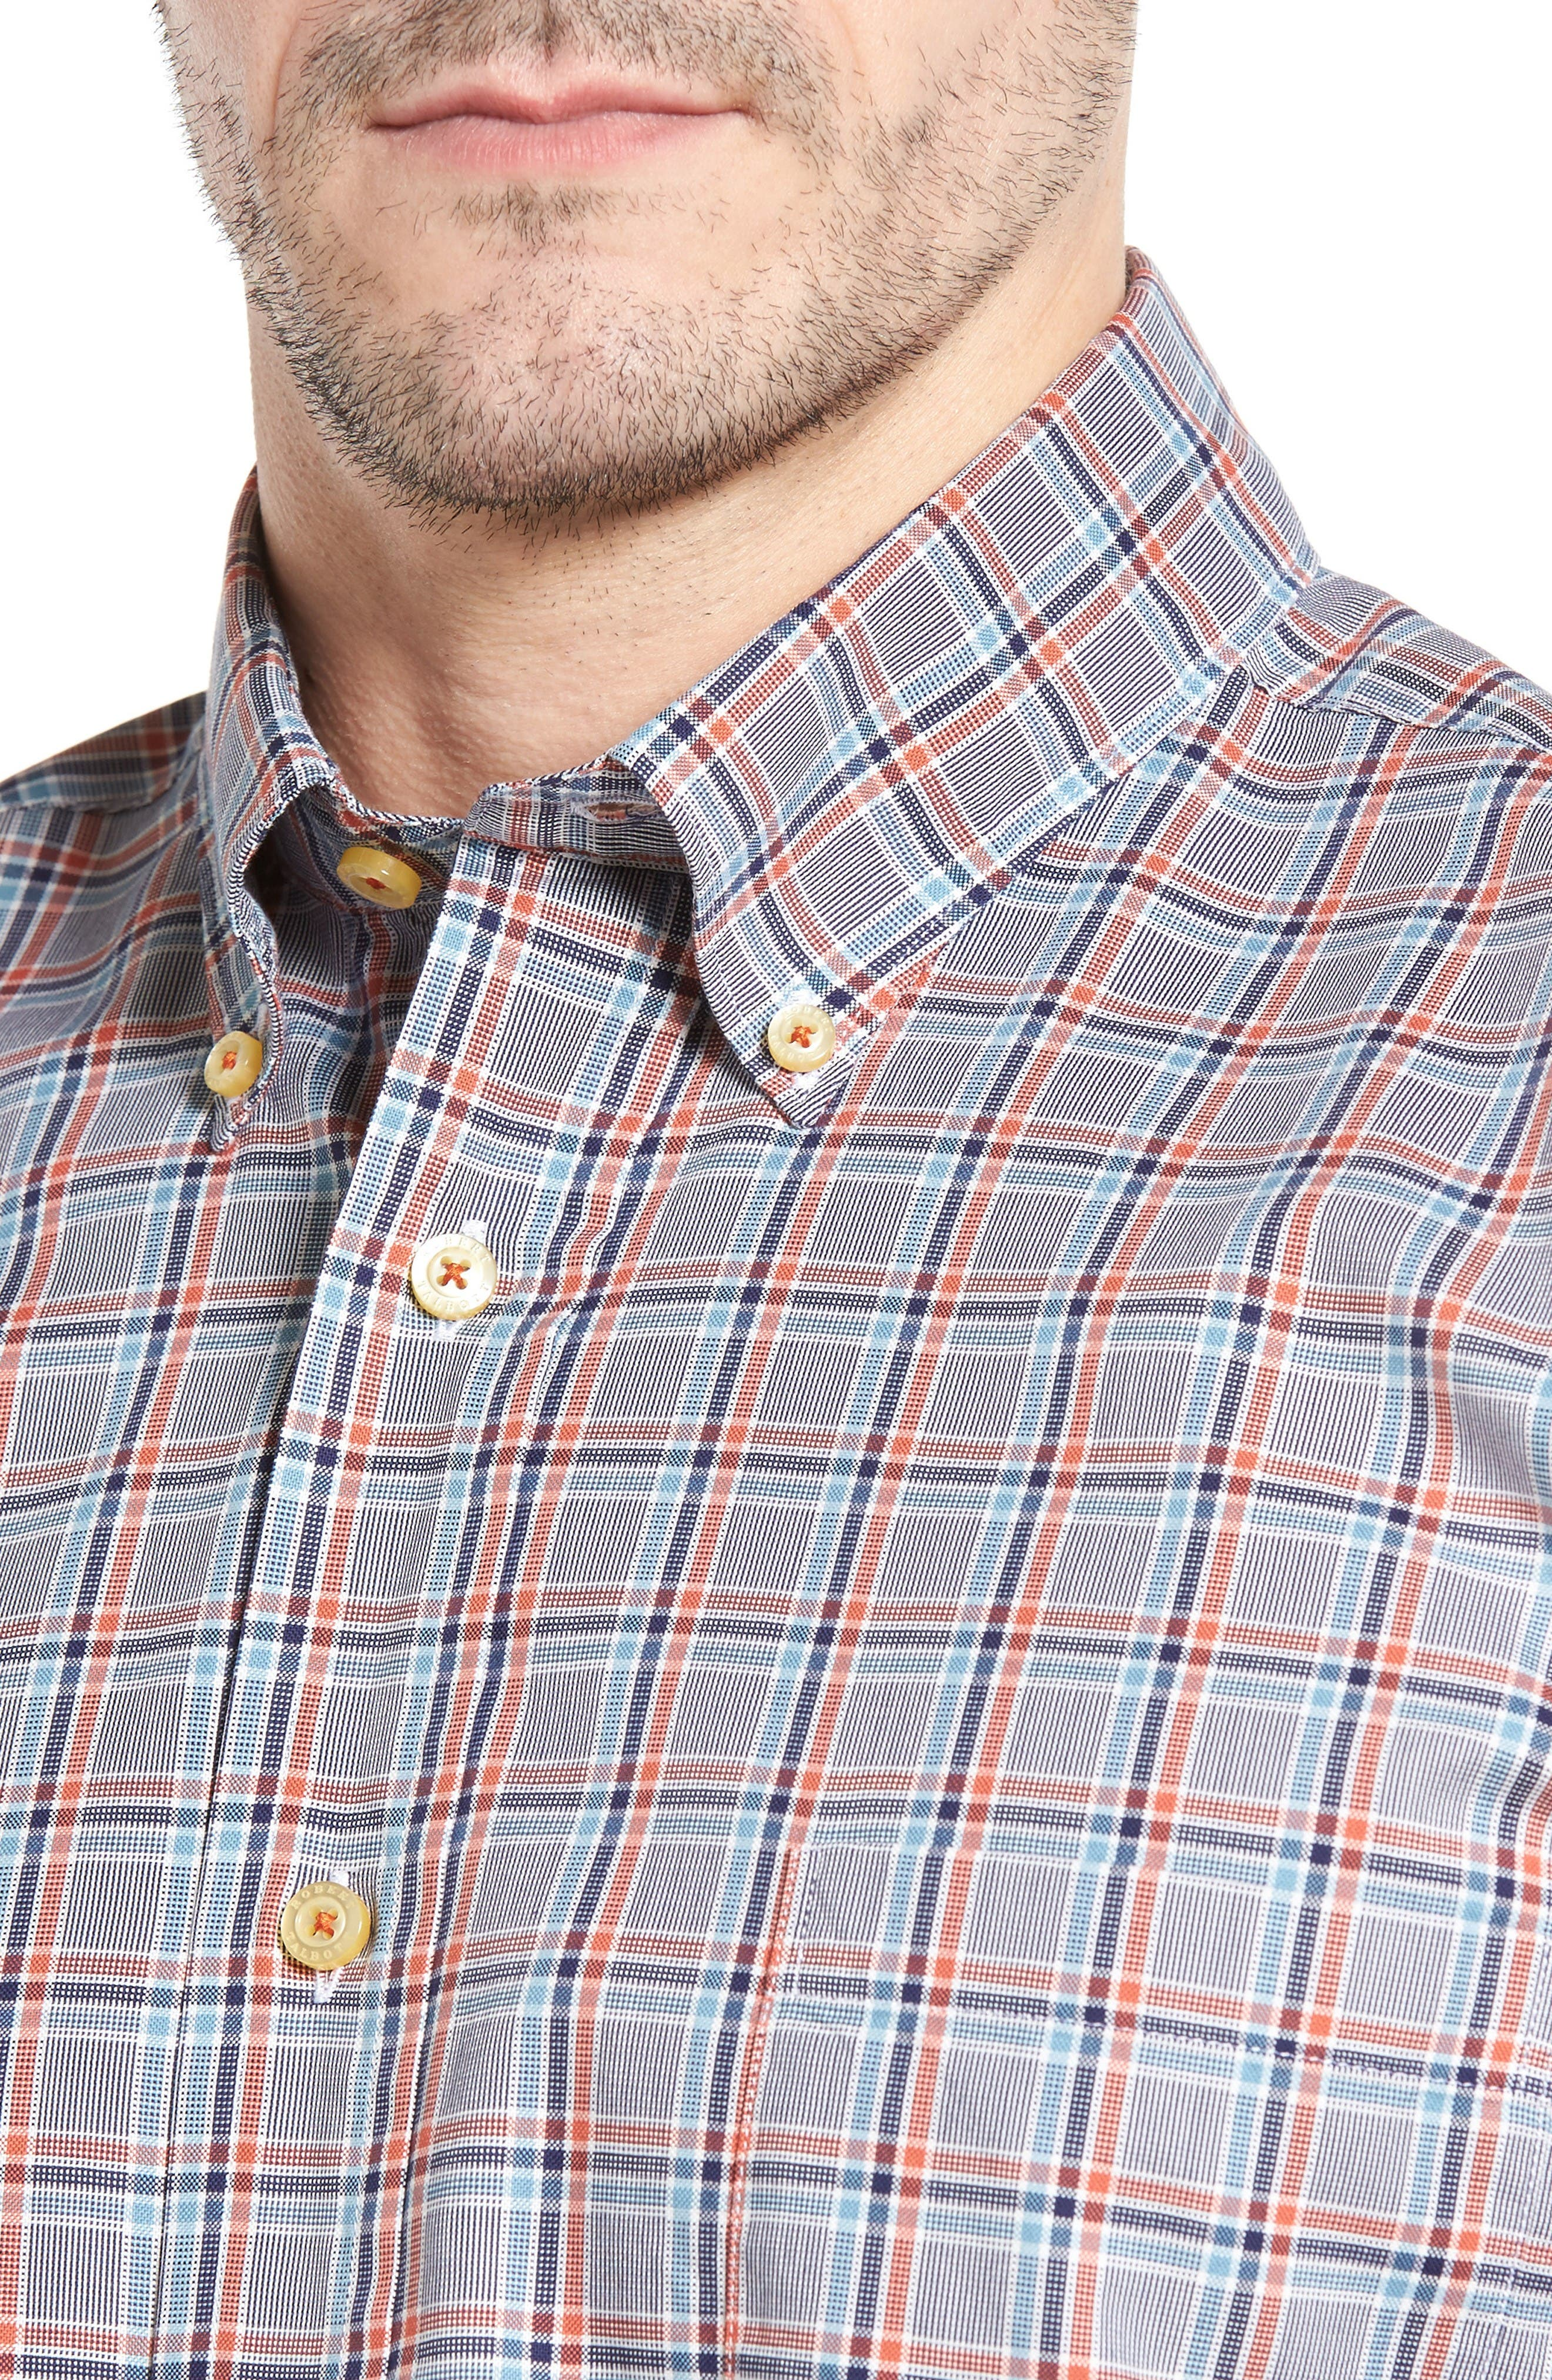 Anderson Classic Fit Plaid Oxford Sport Shirt,                             Alternate thumbnail 4, color,                             Navy